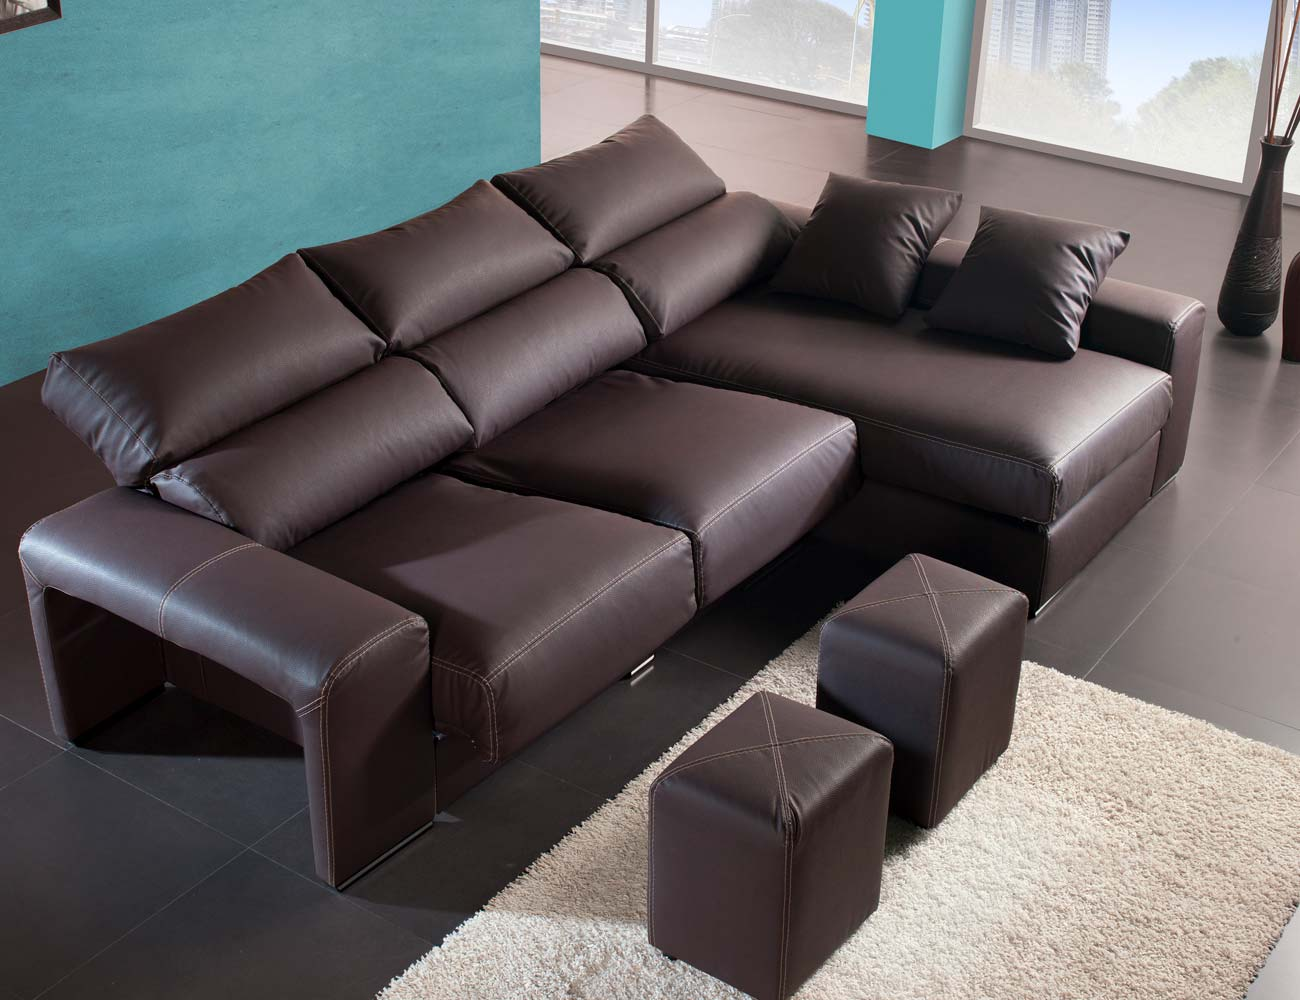 Sofa chaiselongue moderno polipiel chocolate poufs taburetes68